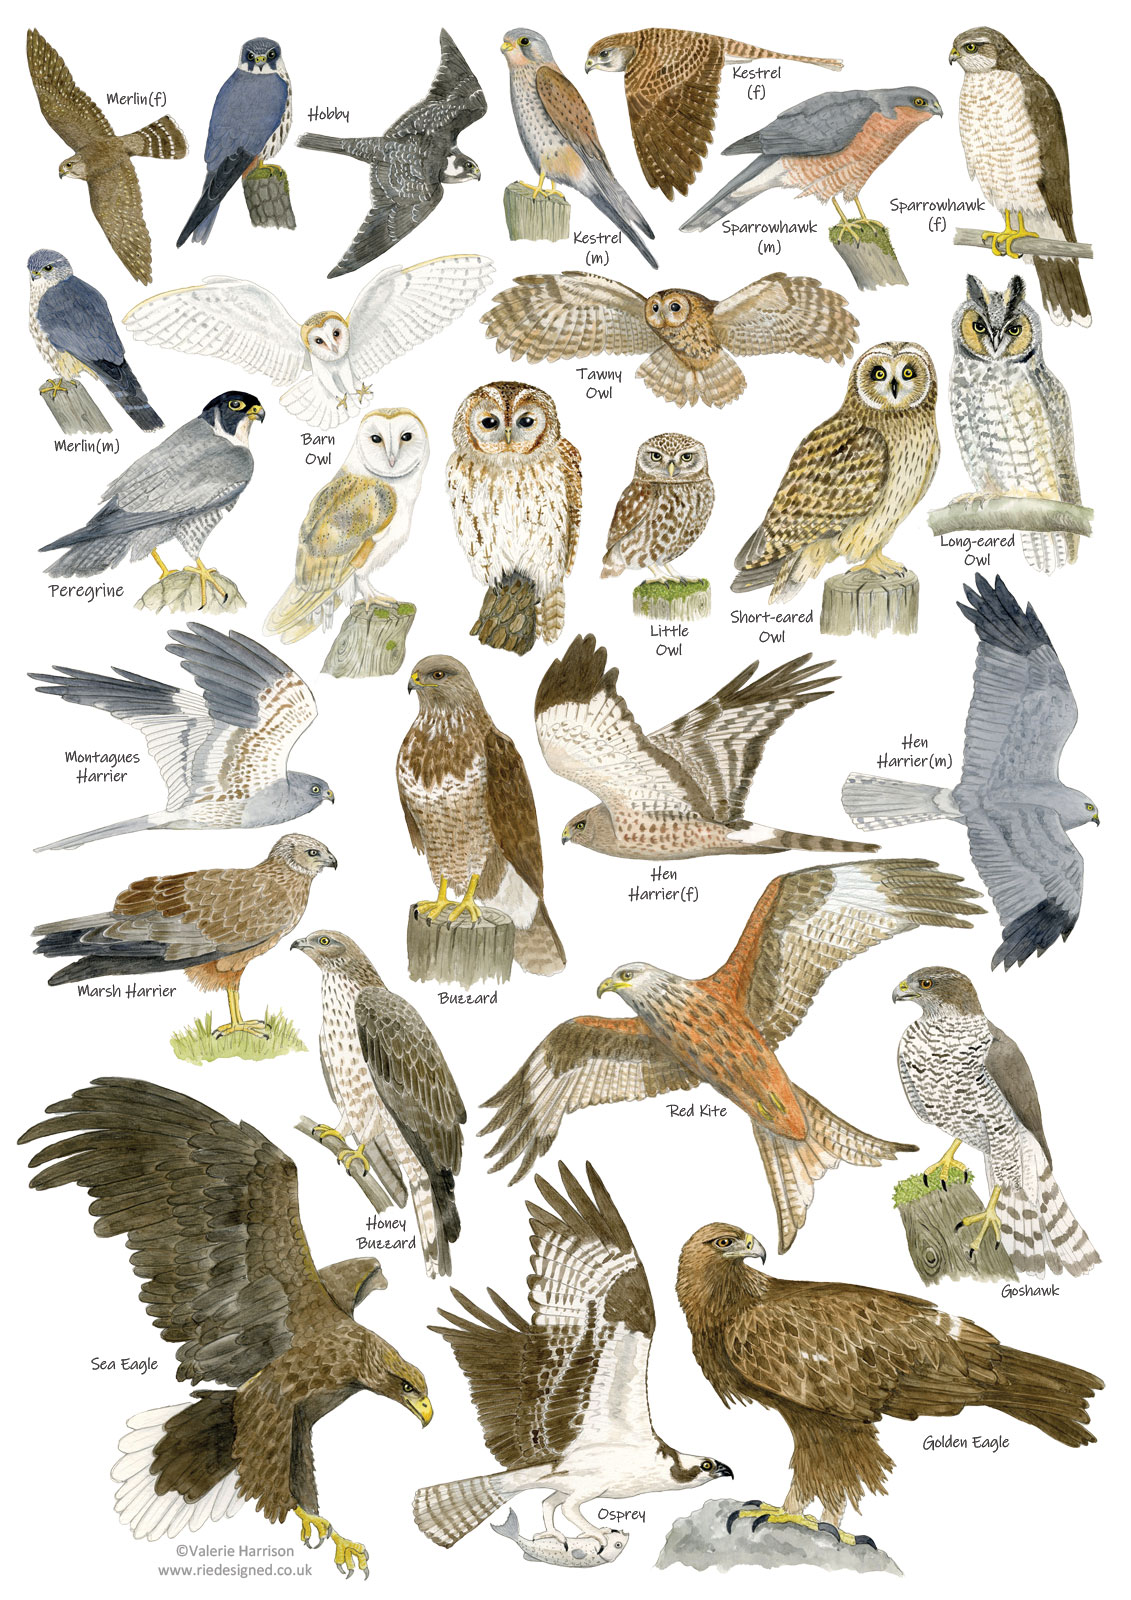 British Birds Of Prey And Owls Identification A3 Poster Art Print